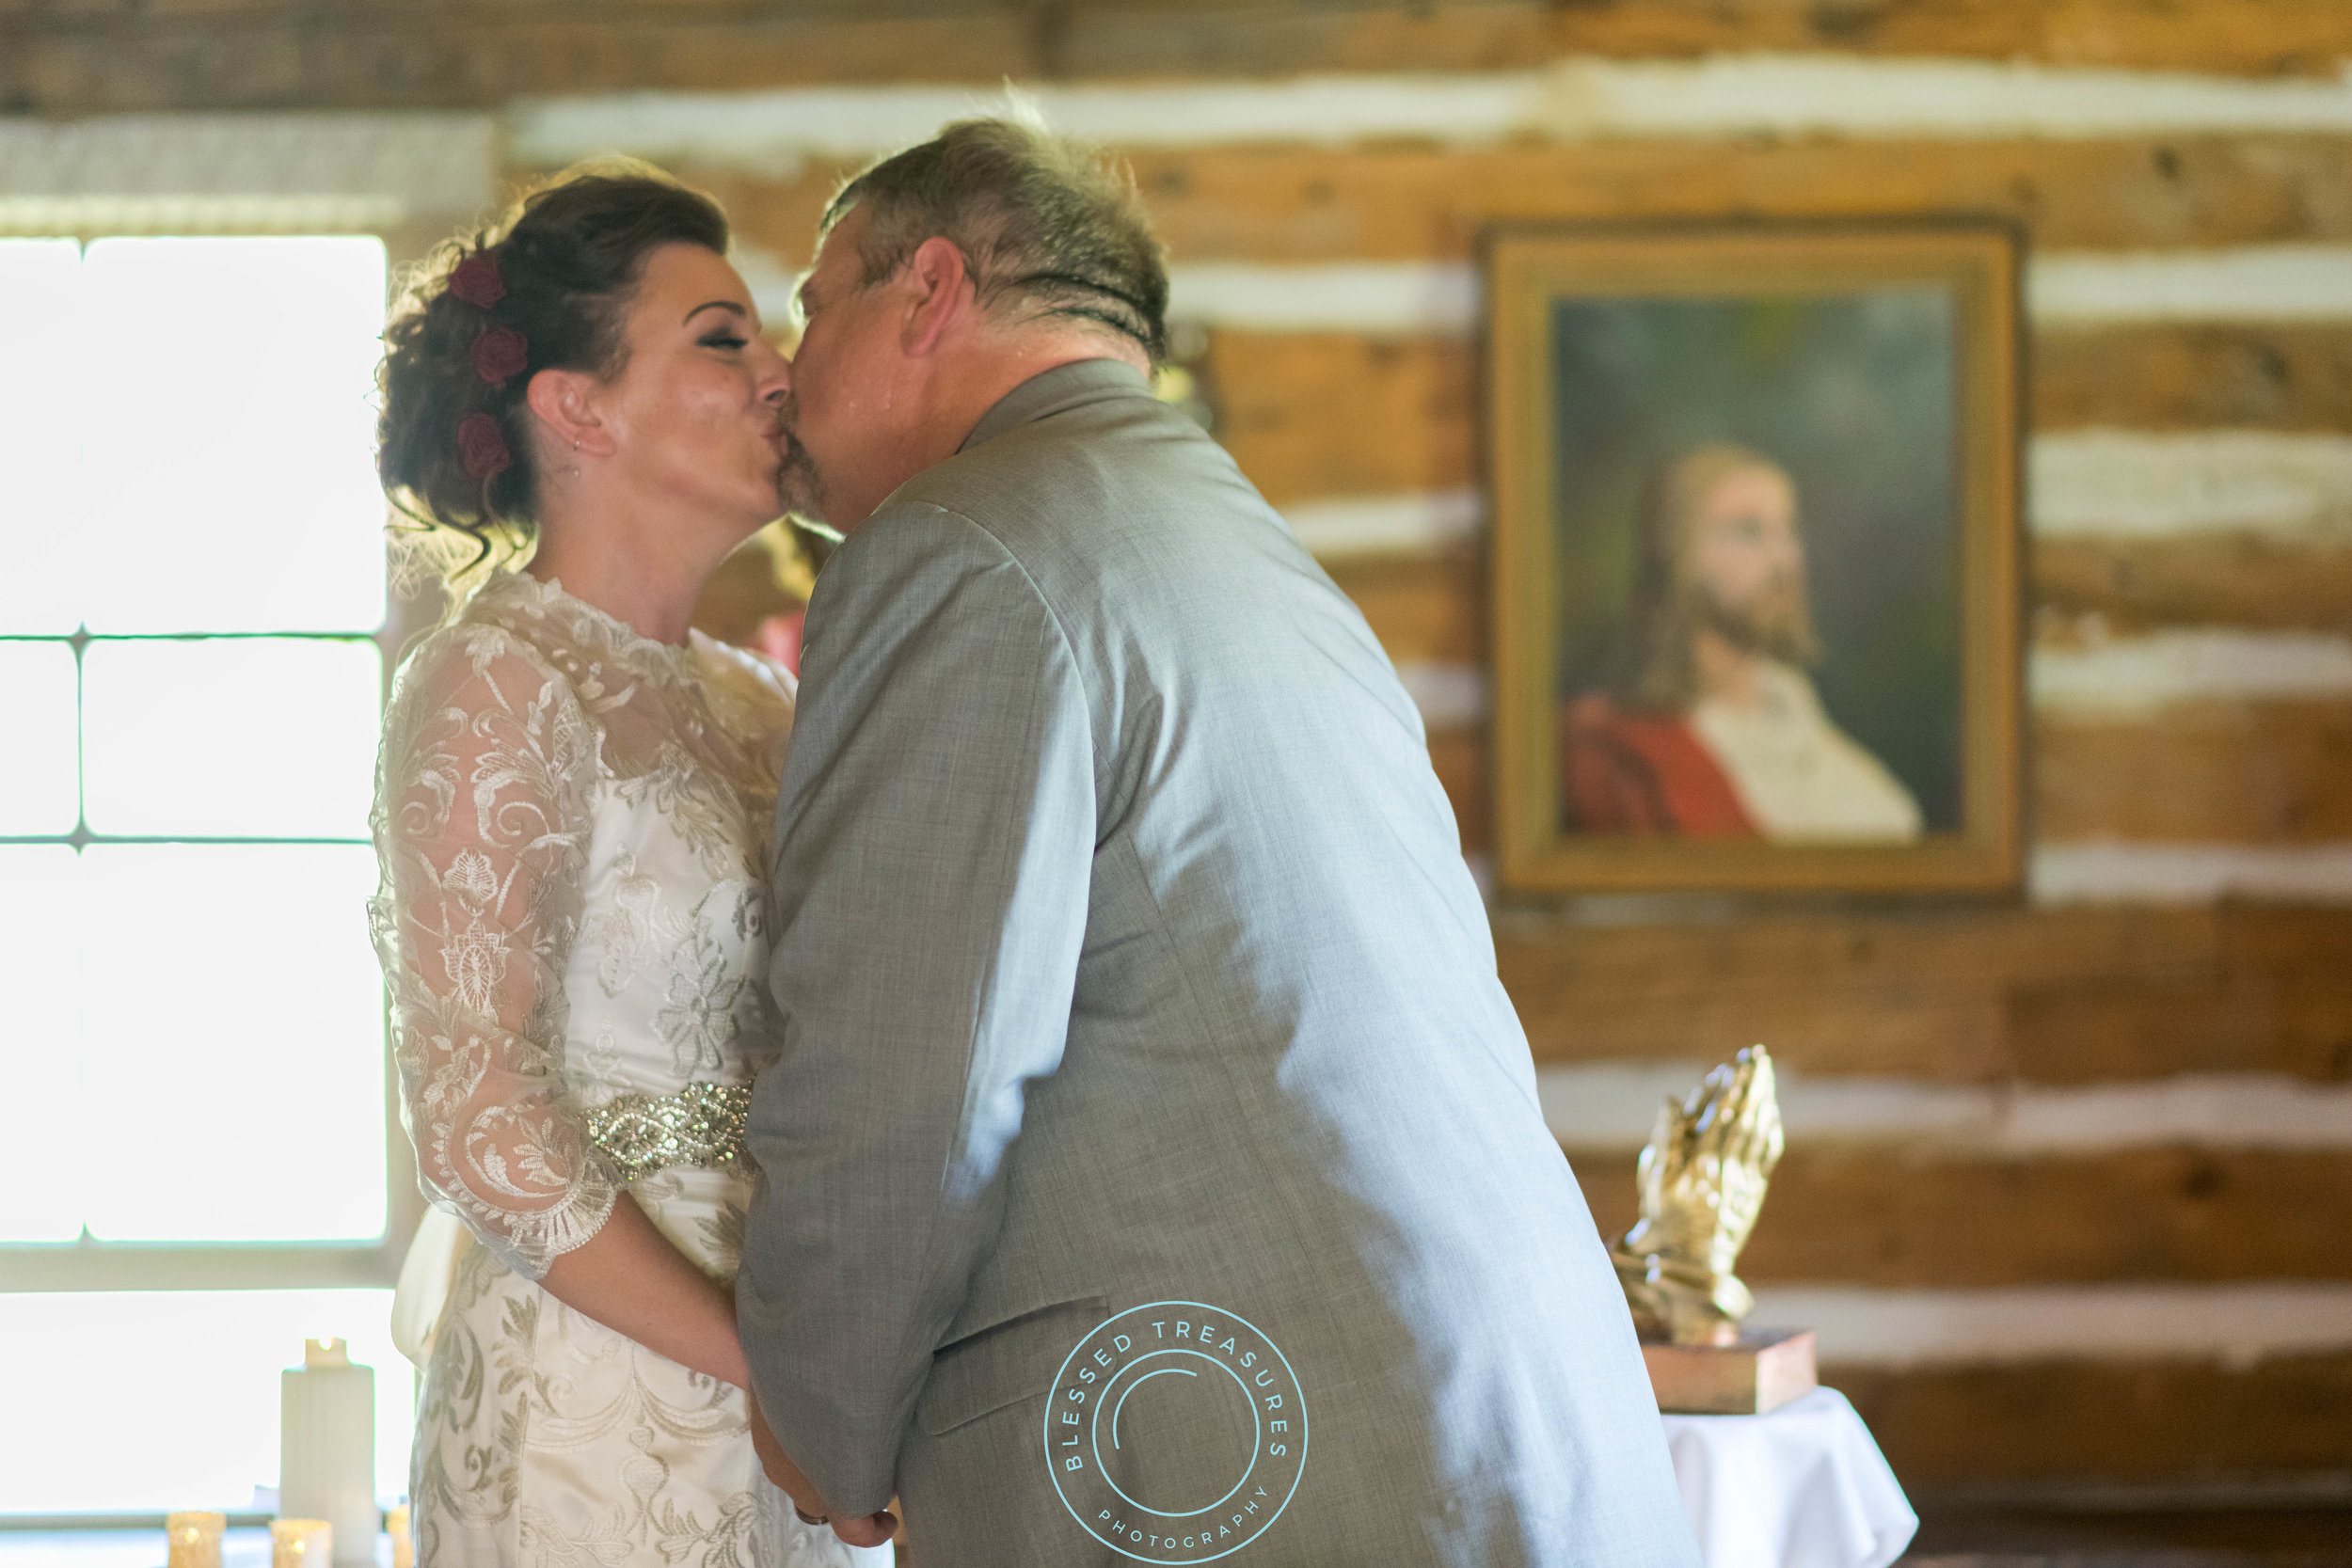 Mansfield township pioneer church crystal falls michigan bride and groom wedding ceremony the kiss